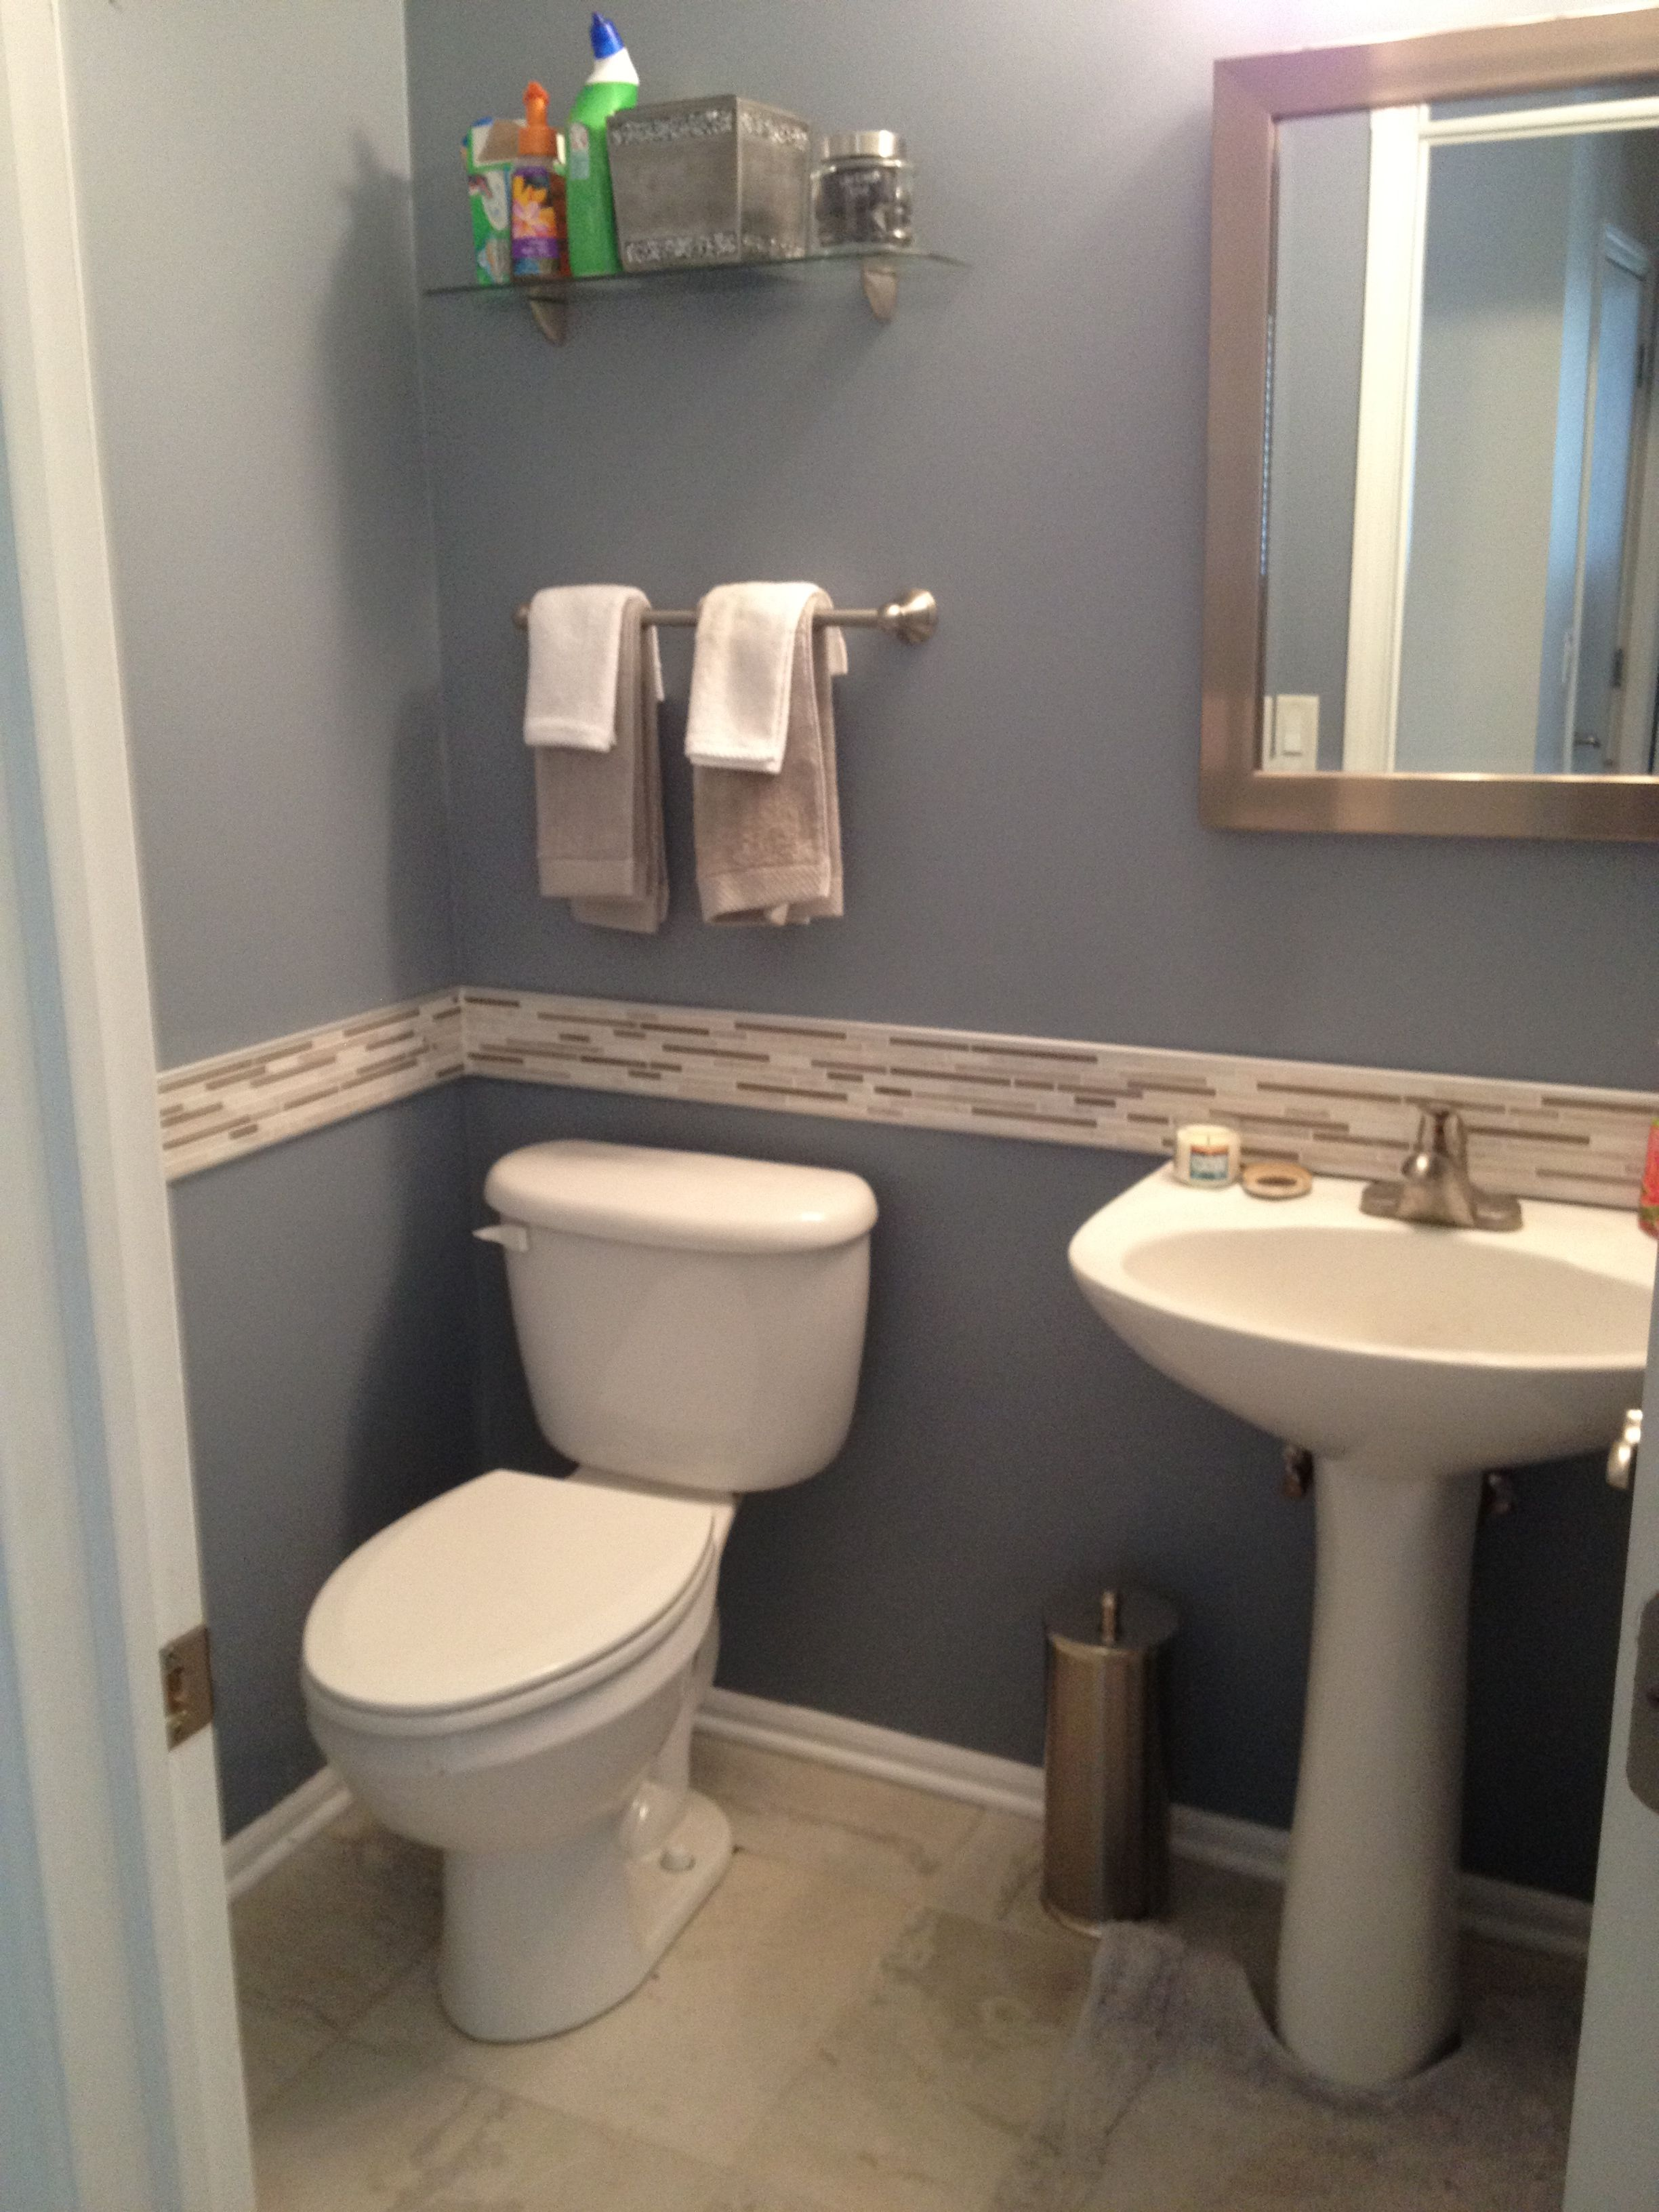 Half bath remodel  My lifeprojects  Pinterest  Half bath remodel Bath remodel and Half baths